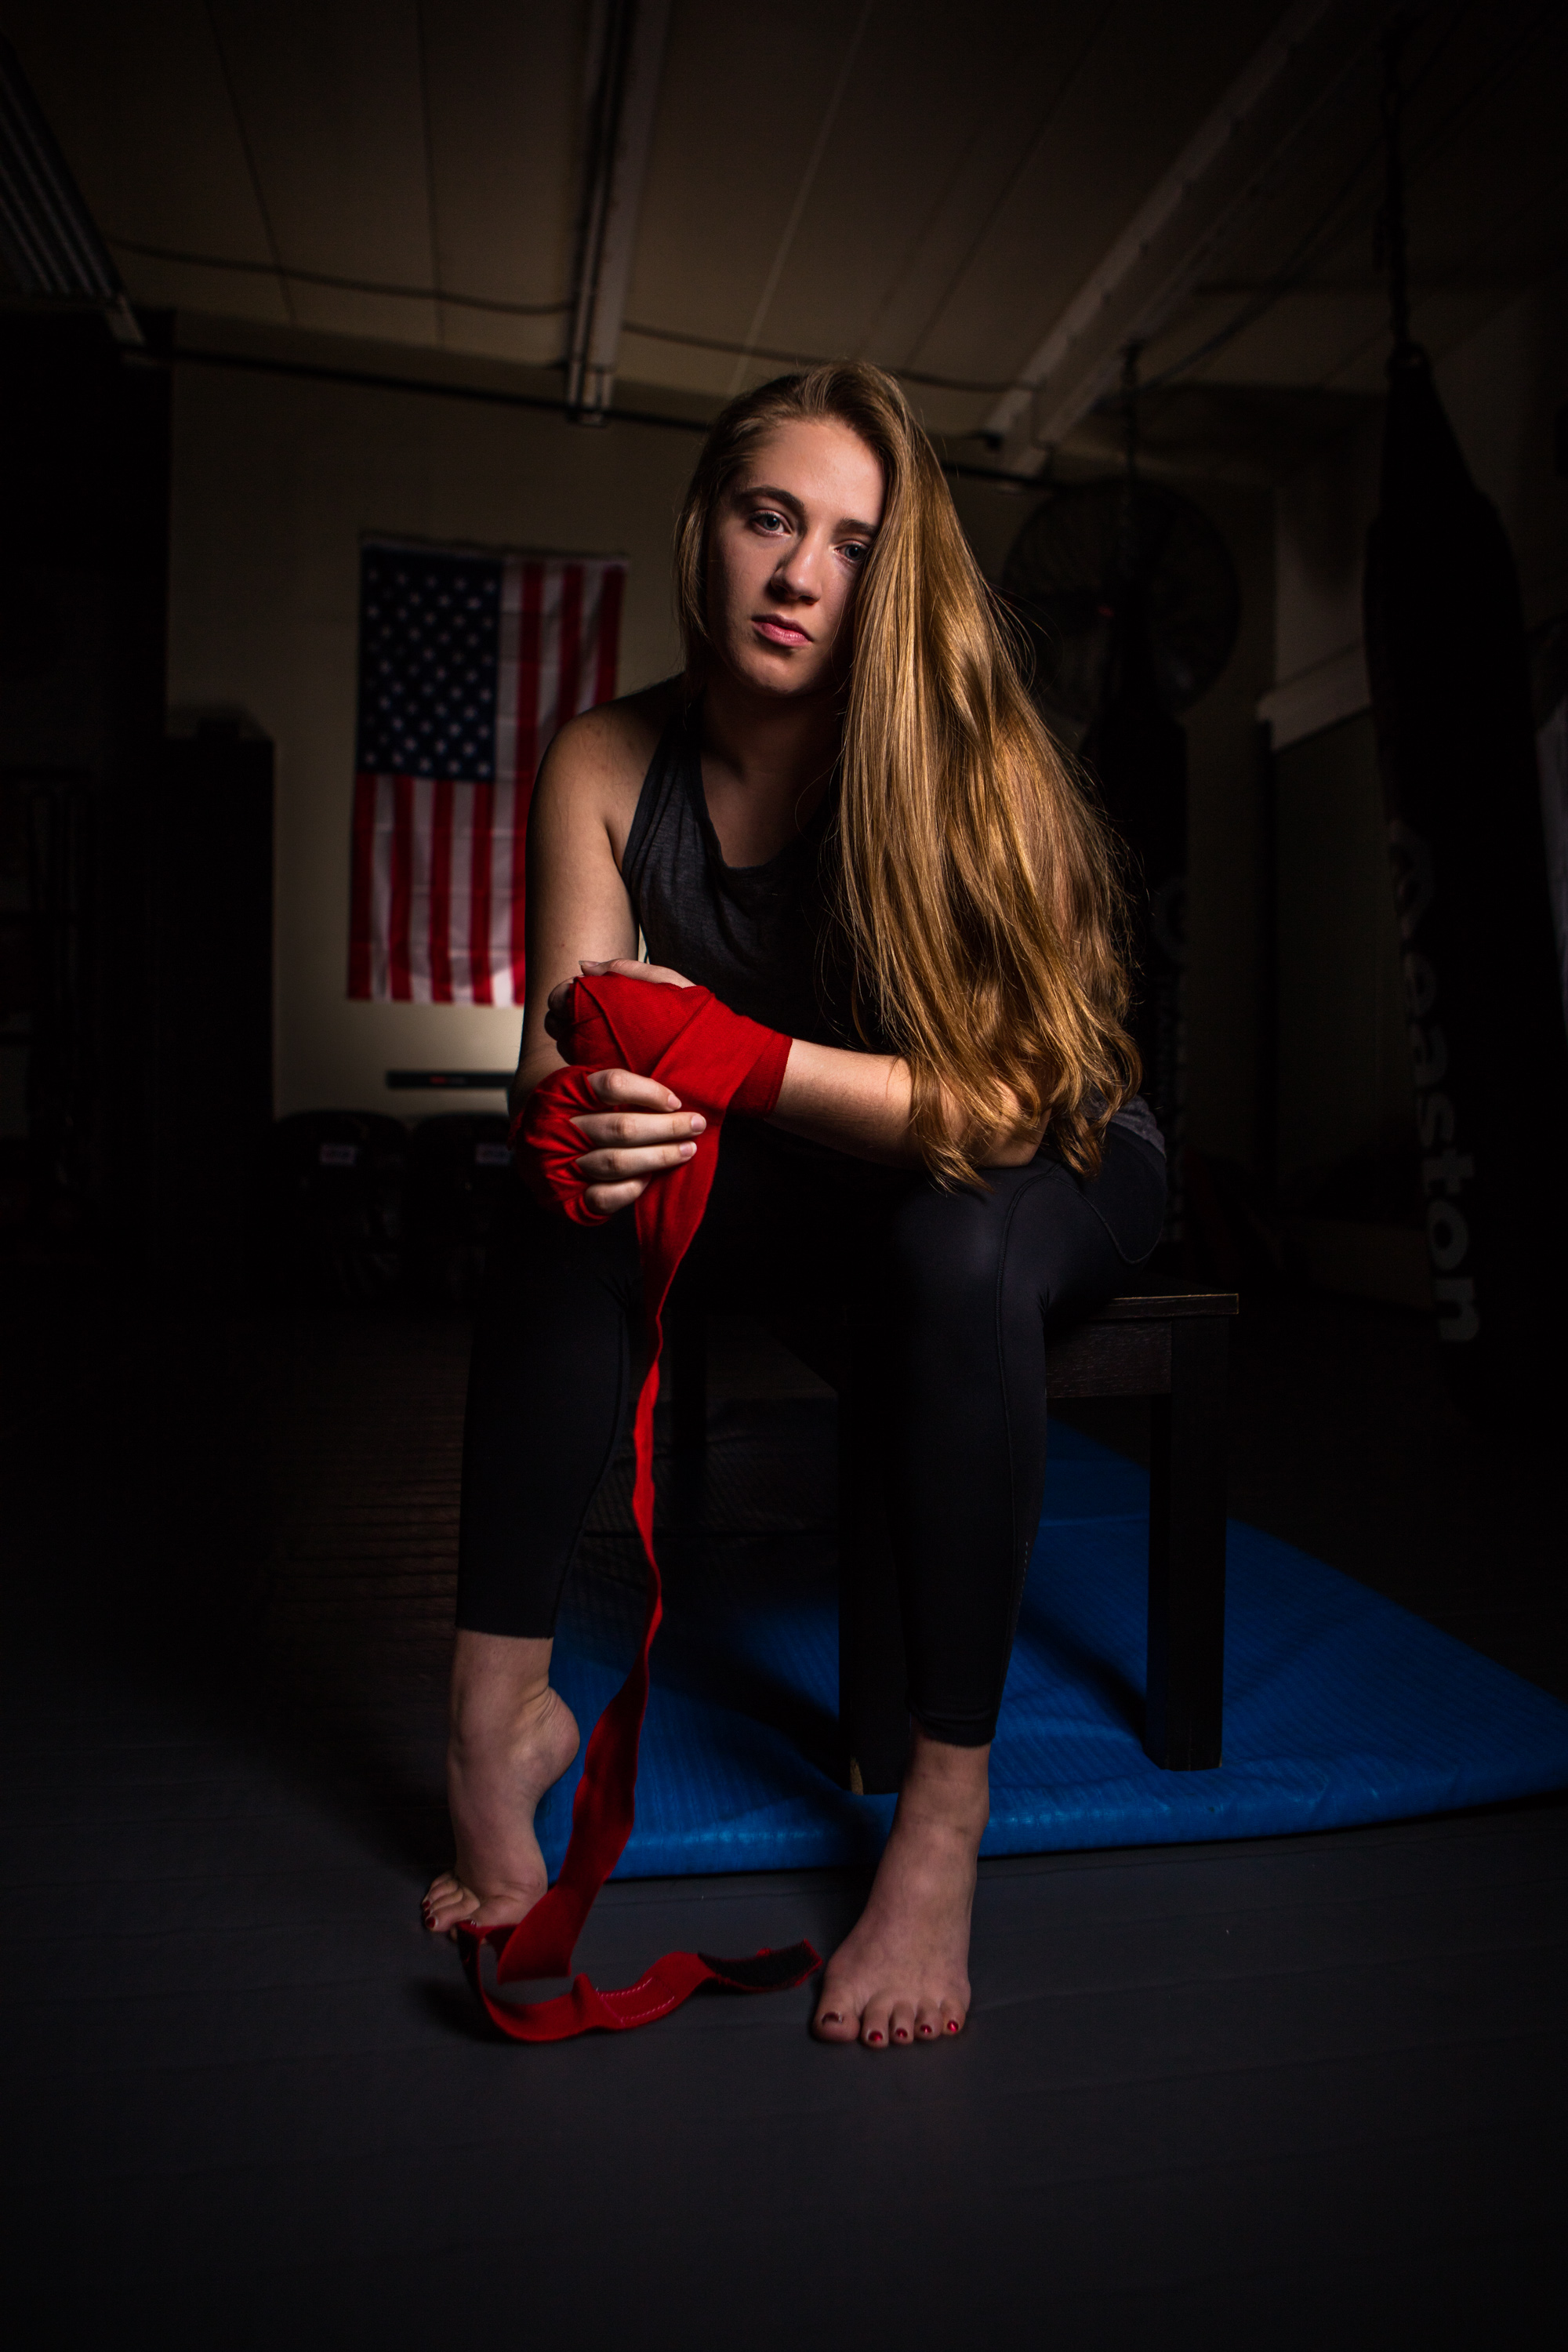 Portrait of Muay Thai kickboxer at Easton gym in Boulder, Colorado.